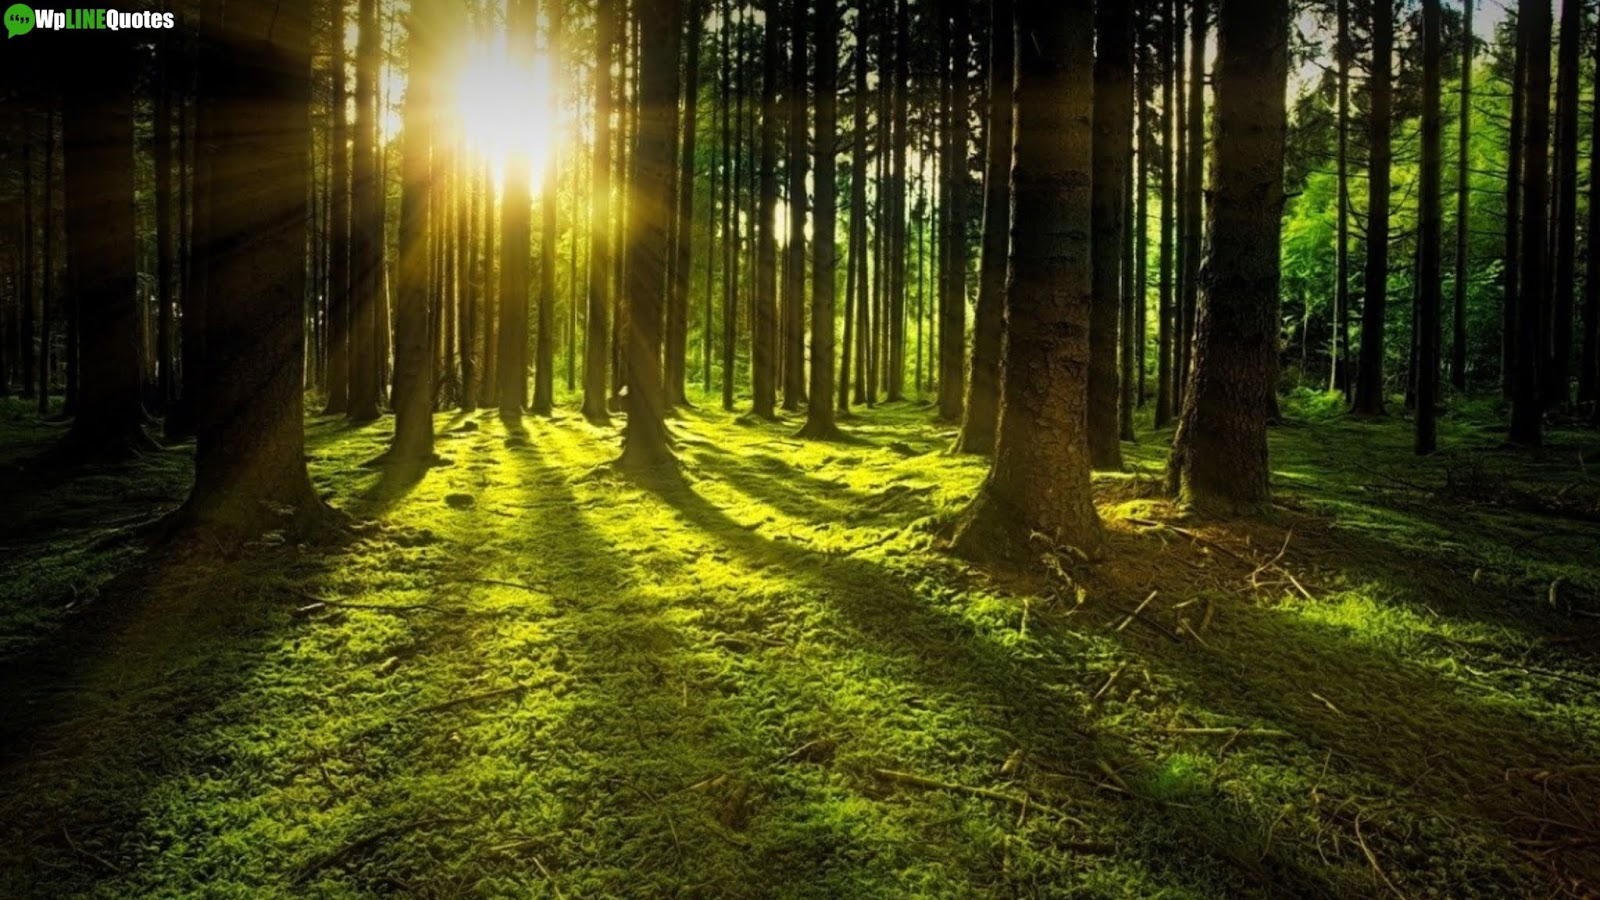 International Day Of Forests Quotes, Slogans, Theme, Facts, Images, Poster